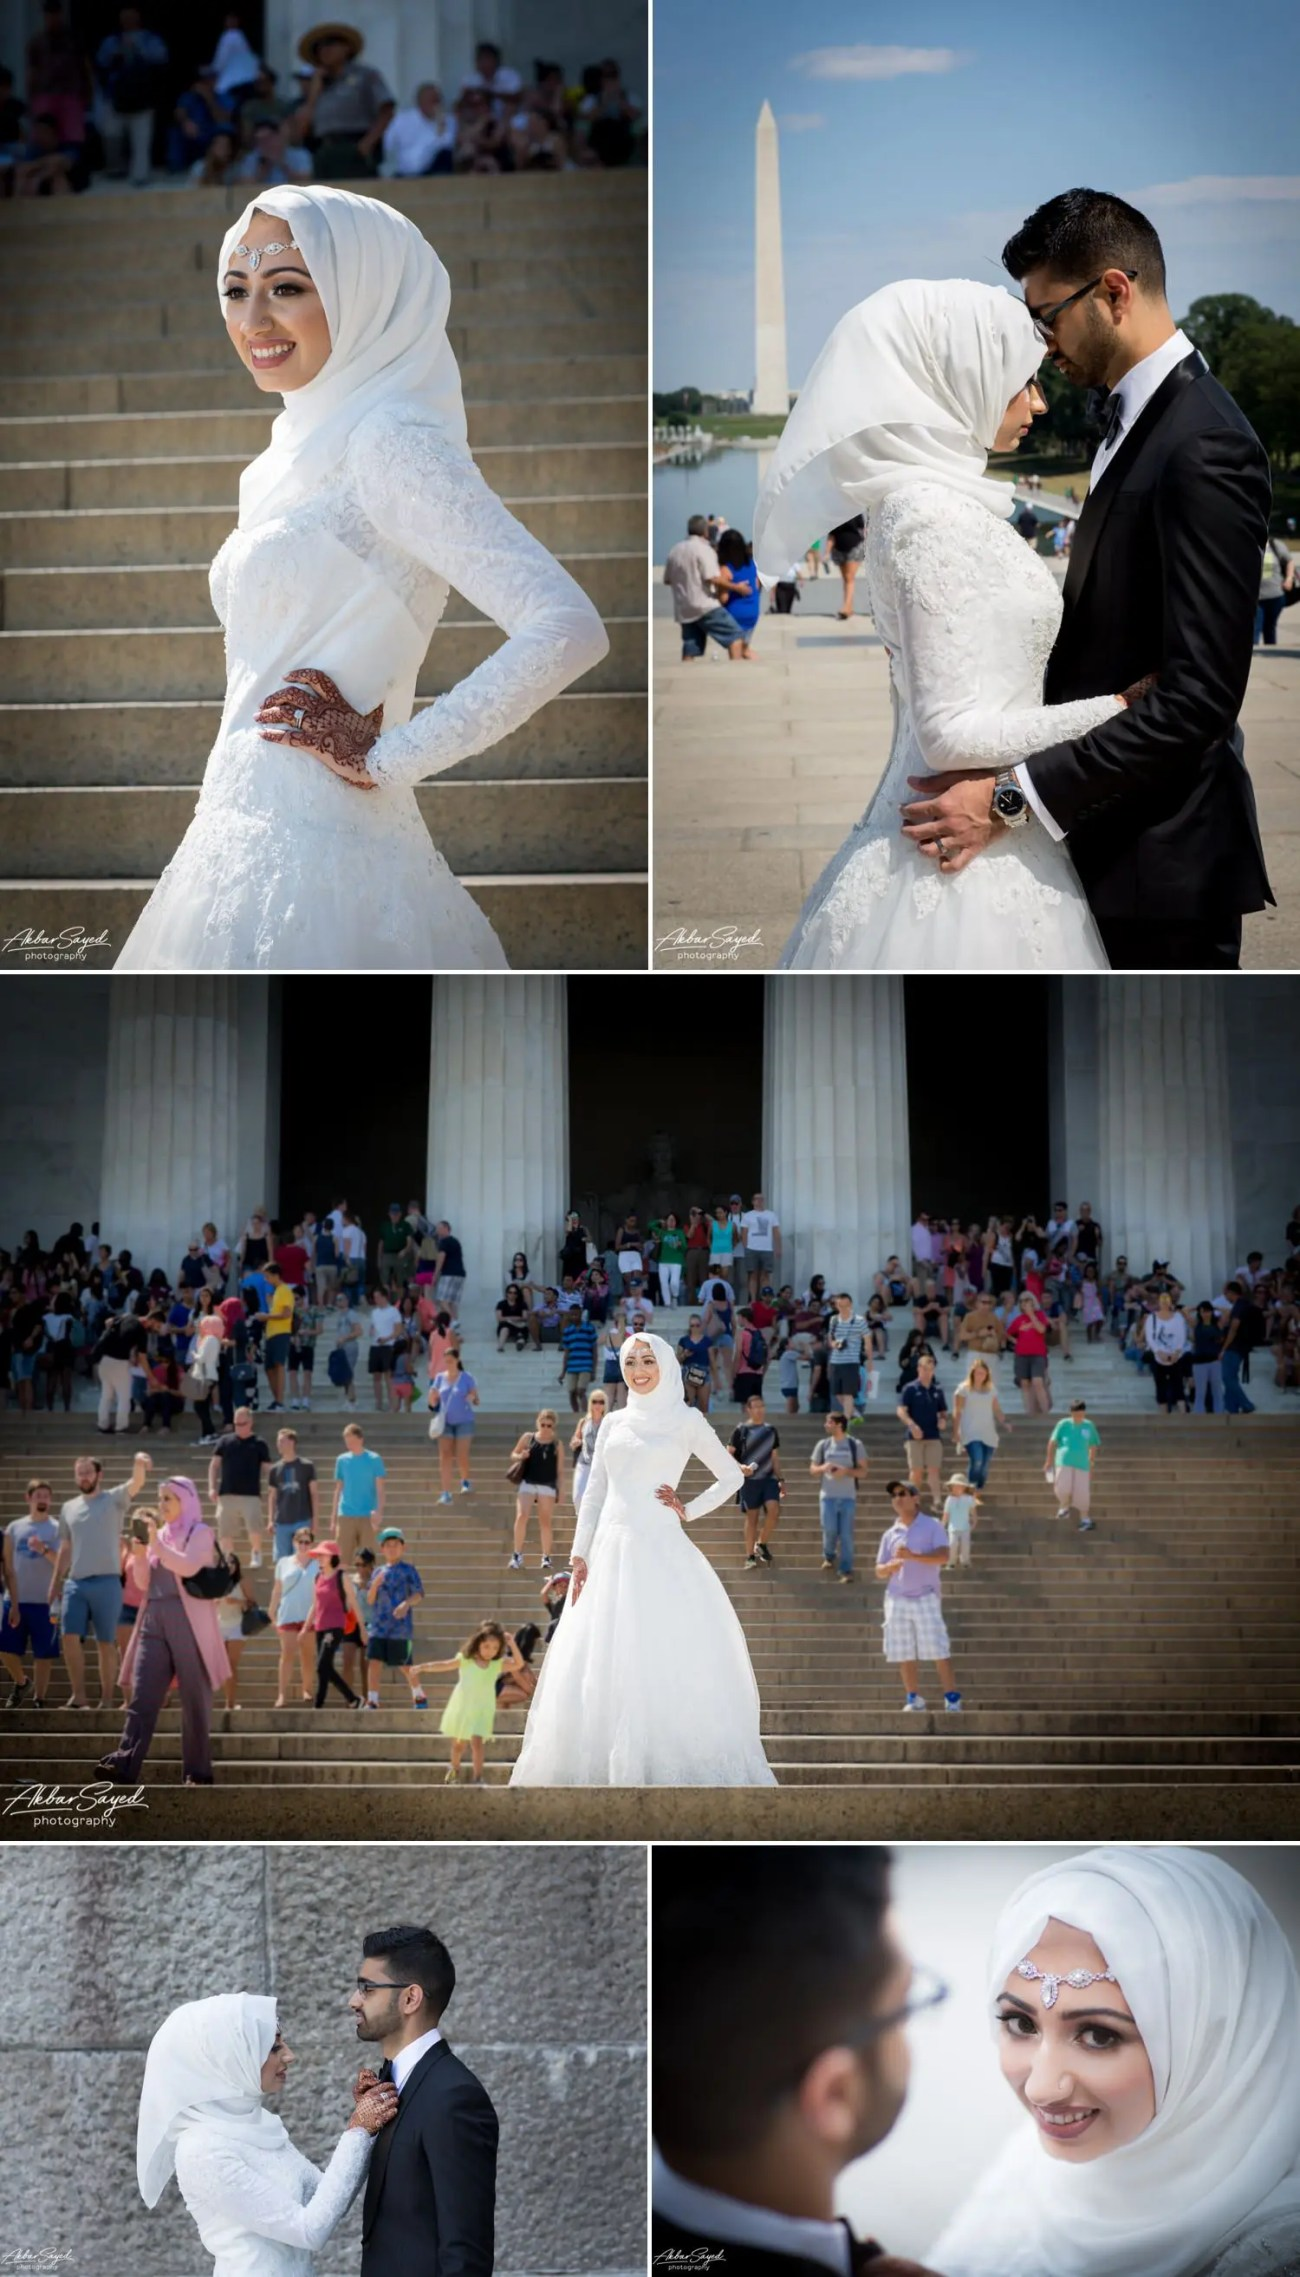 Asad and Sehar - National Mall Bridal Party Portraits 7